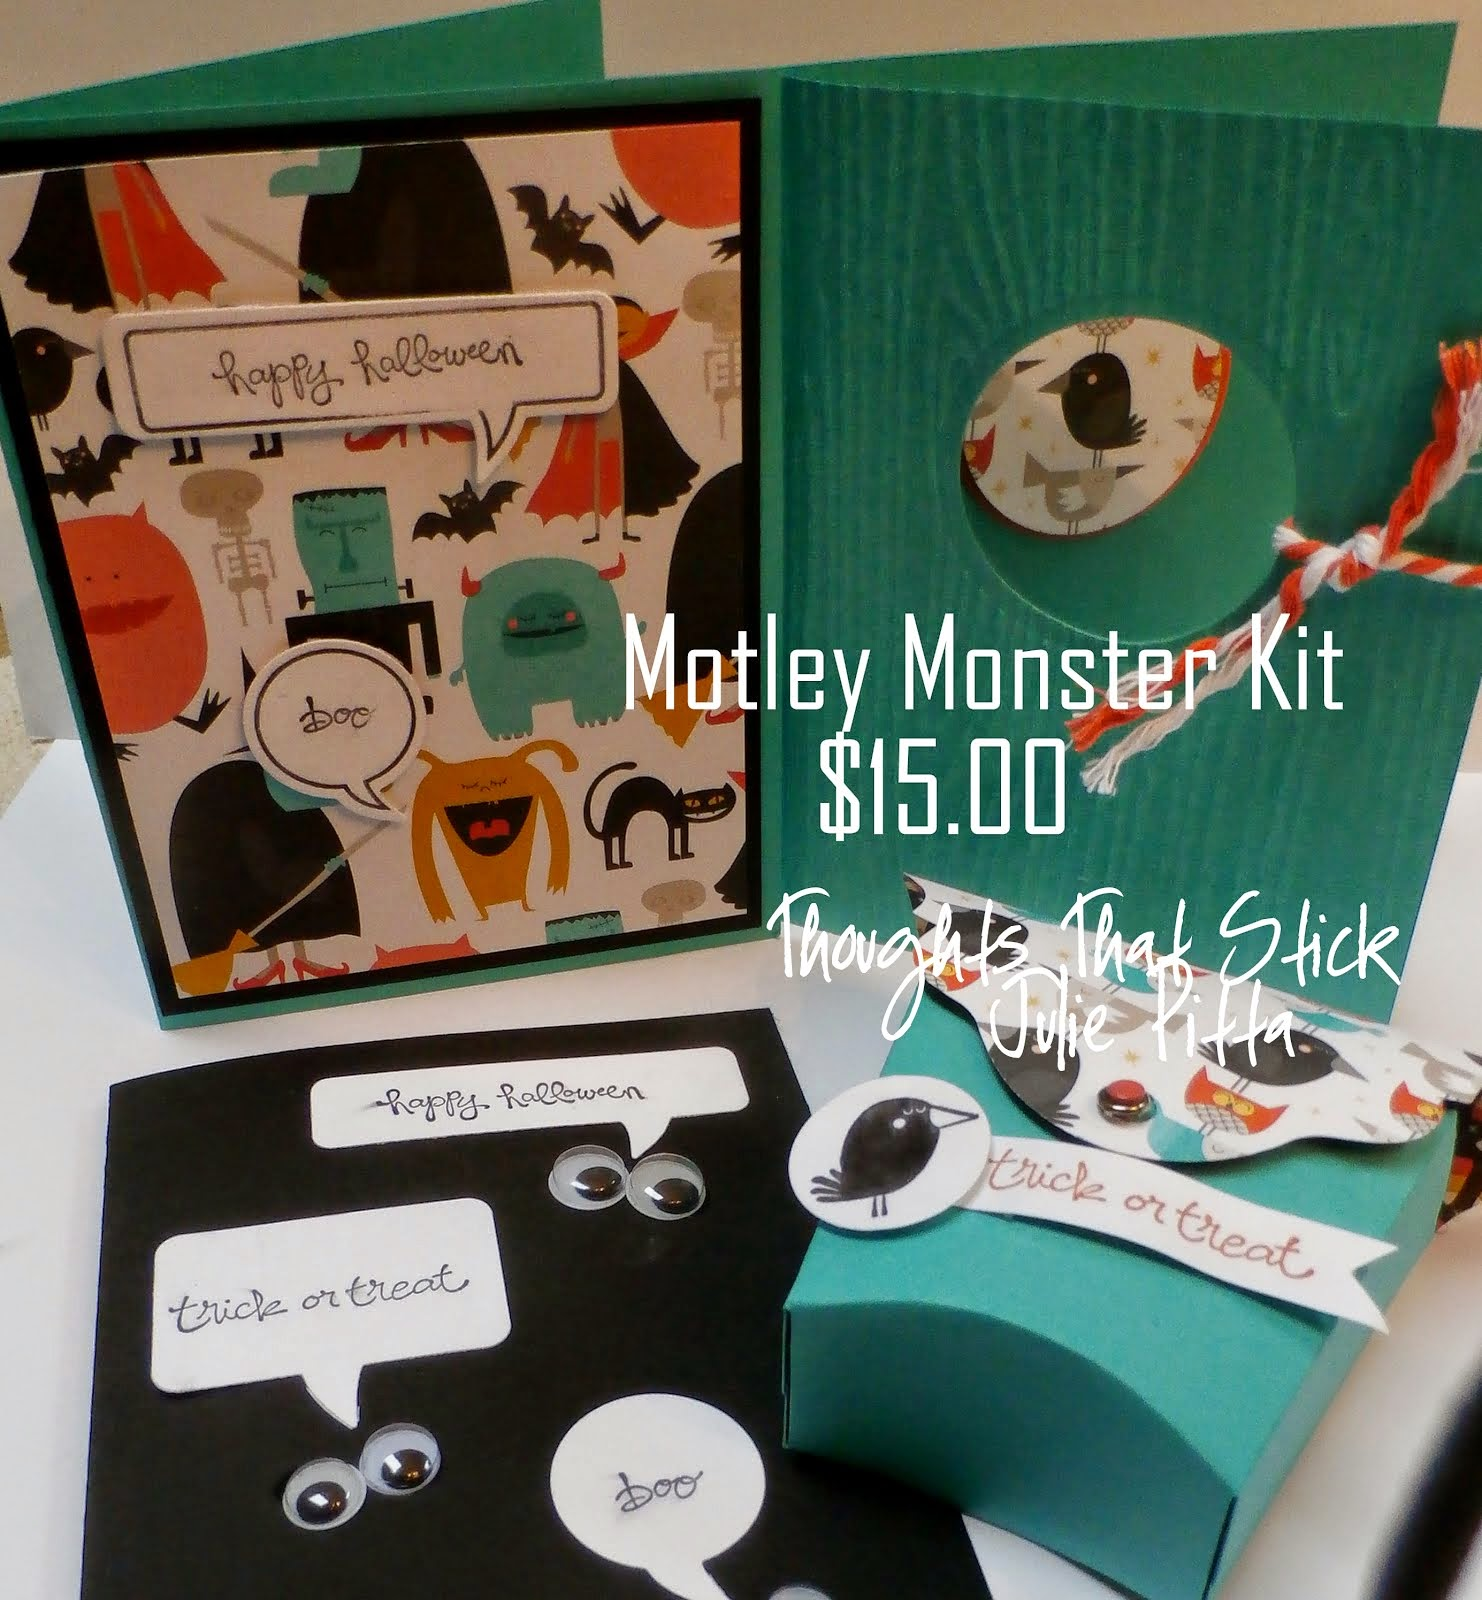 Motley Monsters Kit